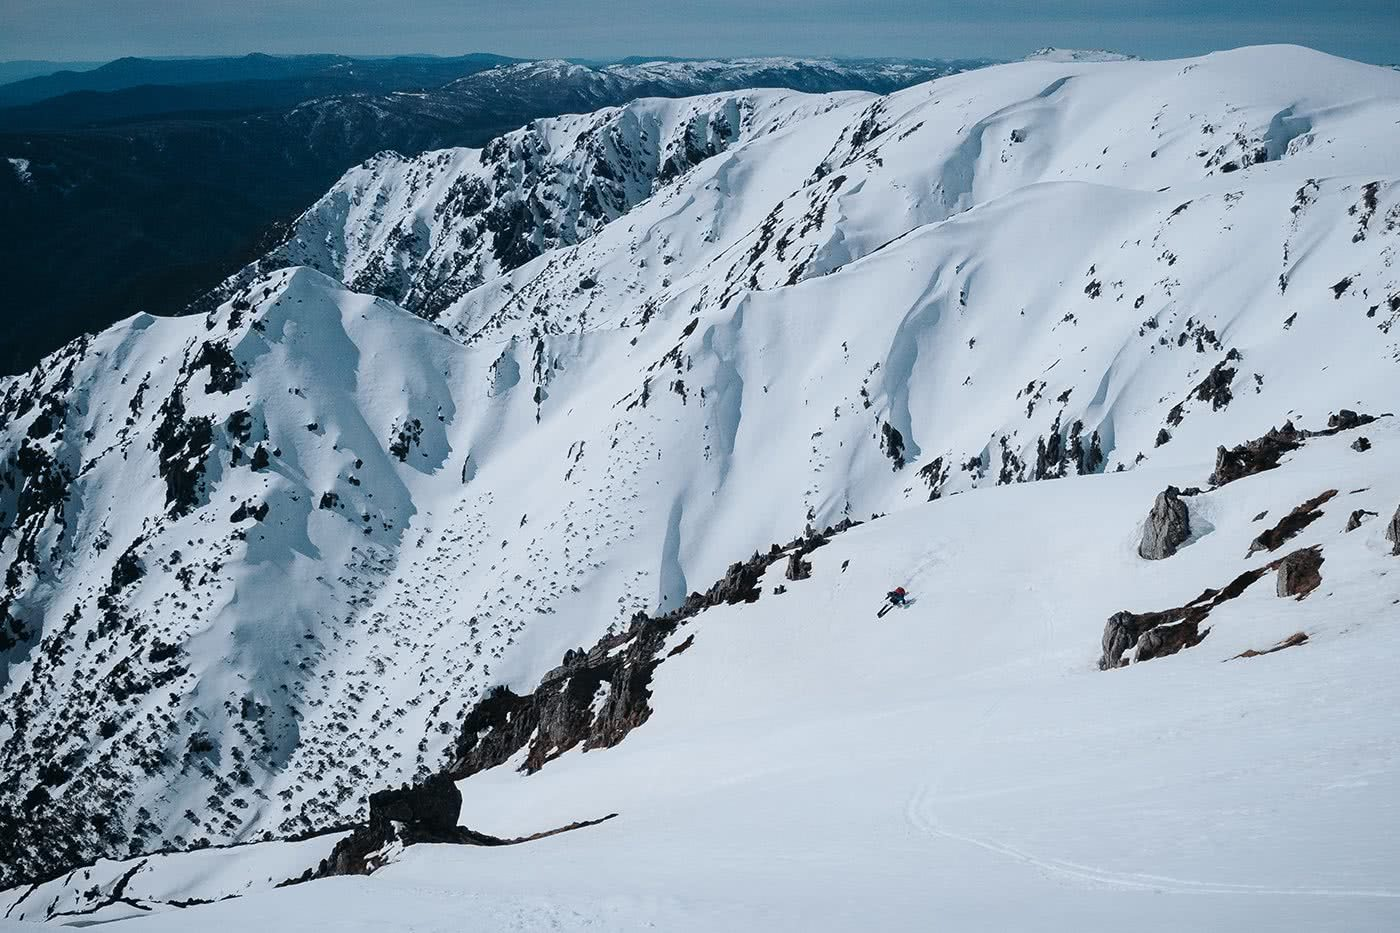 Wait, Australia Has Backcountry Skiing? Is It Any Good? Photo by Ain Raadick or Ben Savage, Arc'teryx event, snow, cliff, mountains